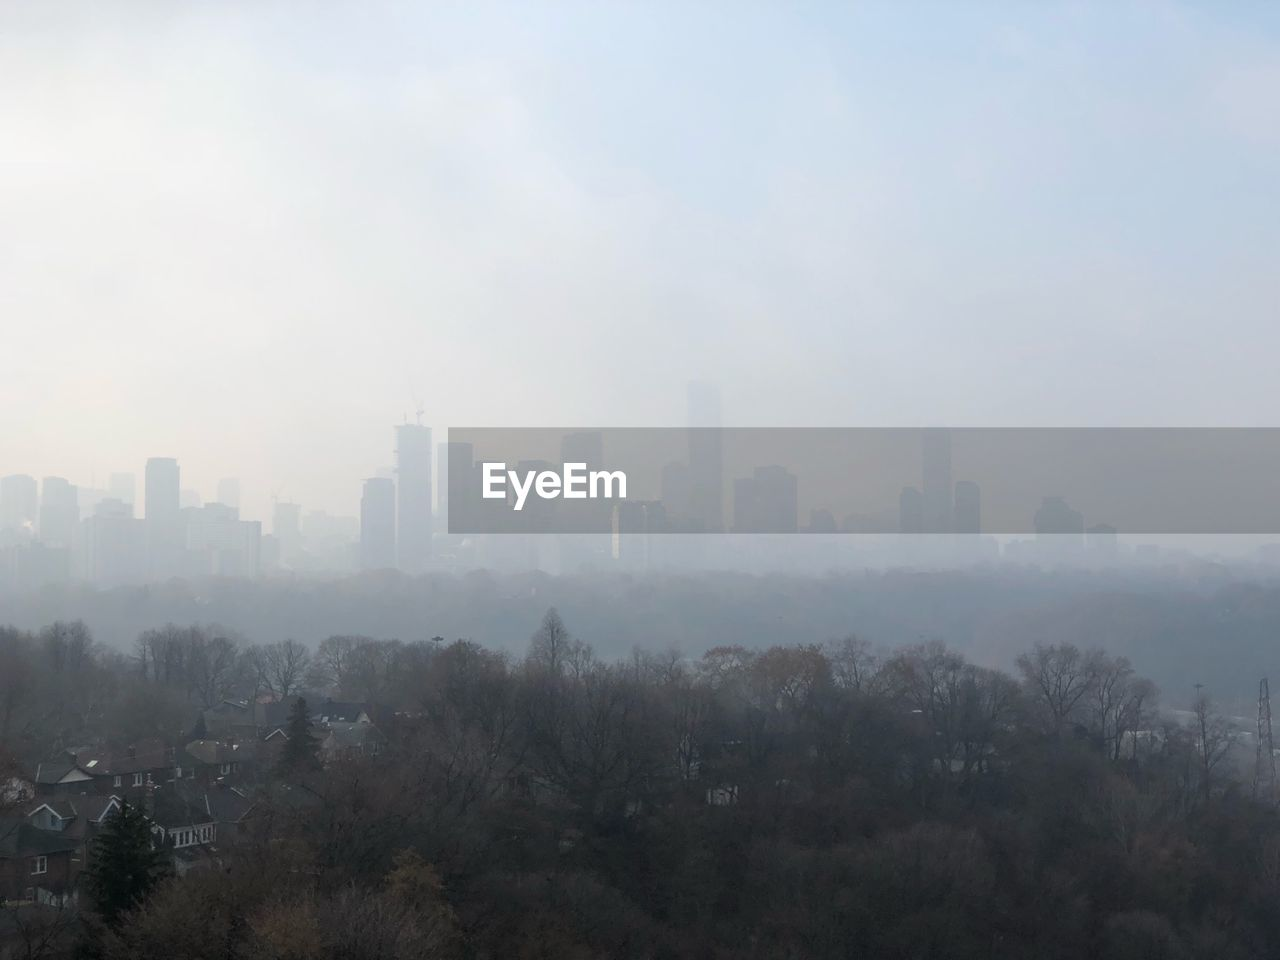 fog, skyscraper, cityscape, architecture, city, mist, no people, building exterior, day, outdoors, travel destinations, tall, nature, tree, urban skyline, sky